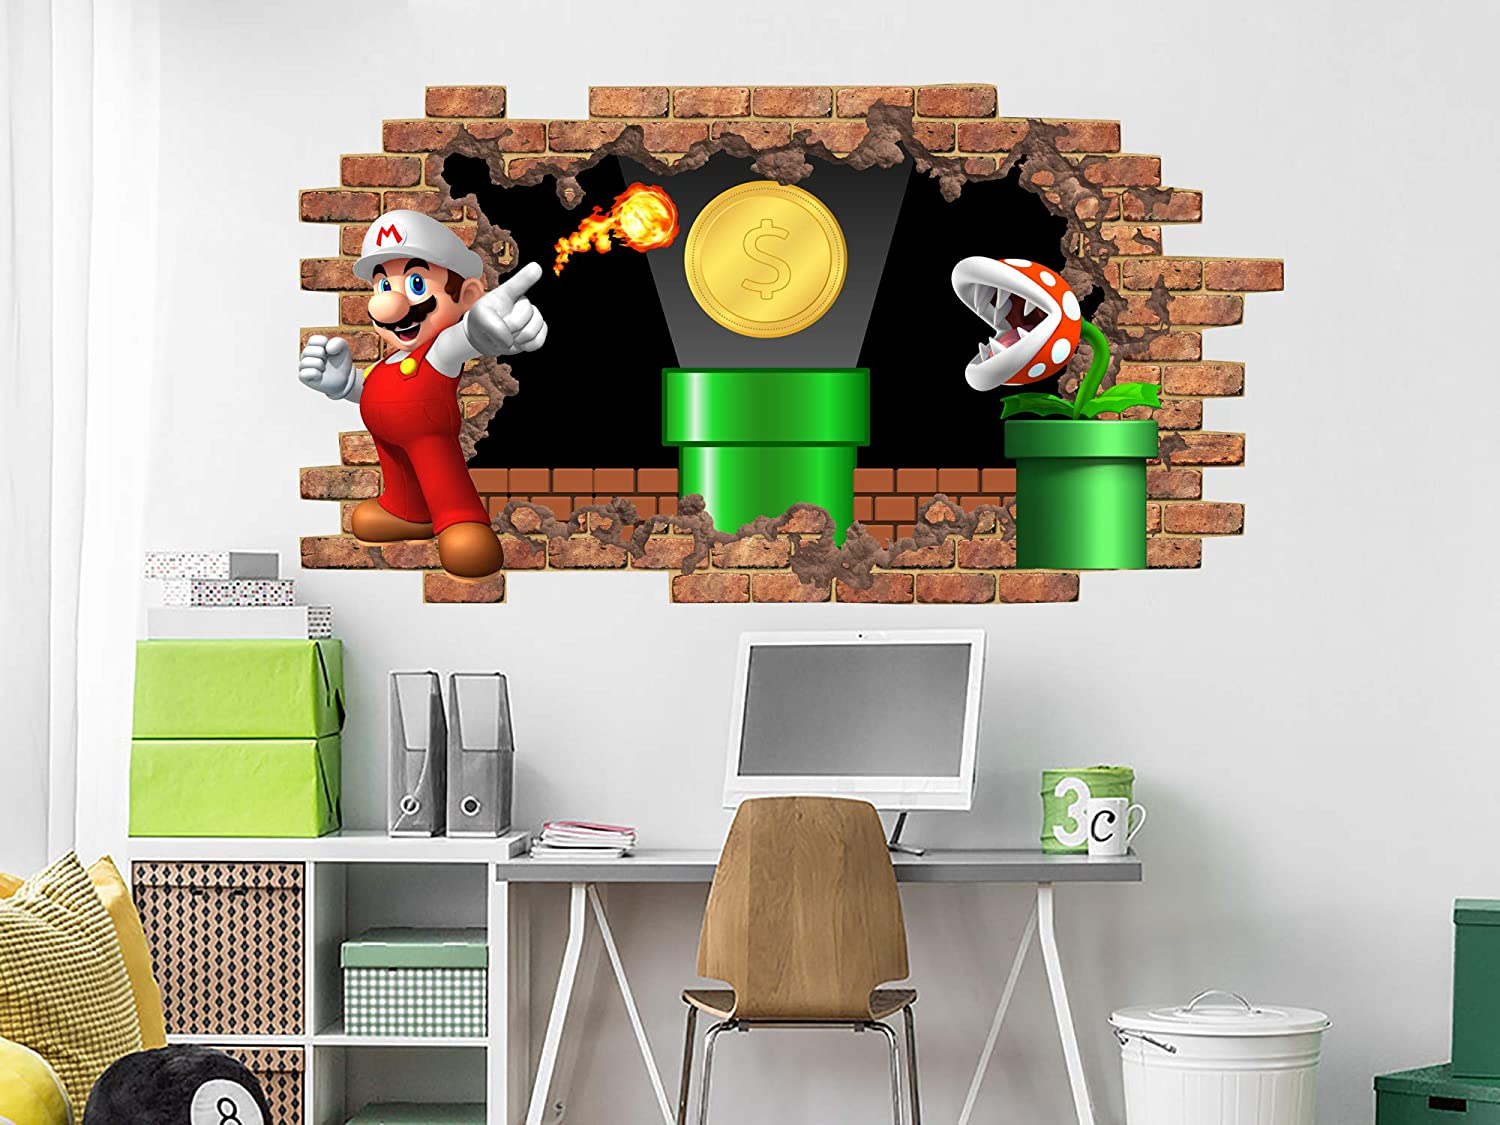 Amazon.com: Super Mario Flame Decals, Hole in the Decal ...